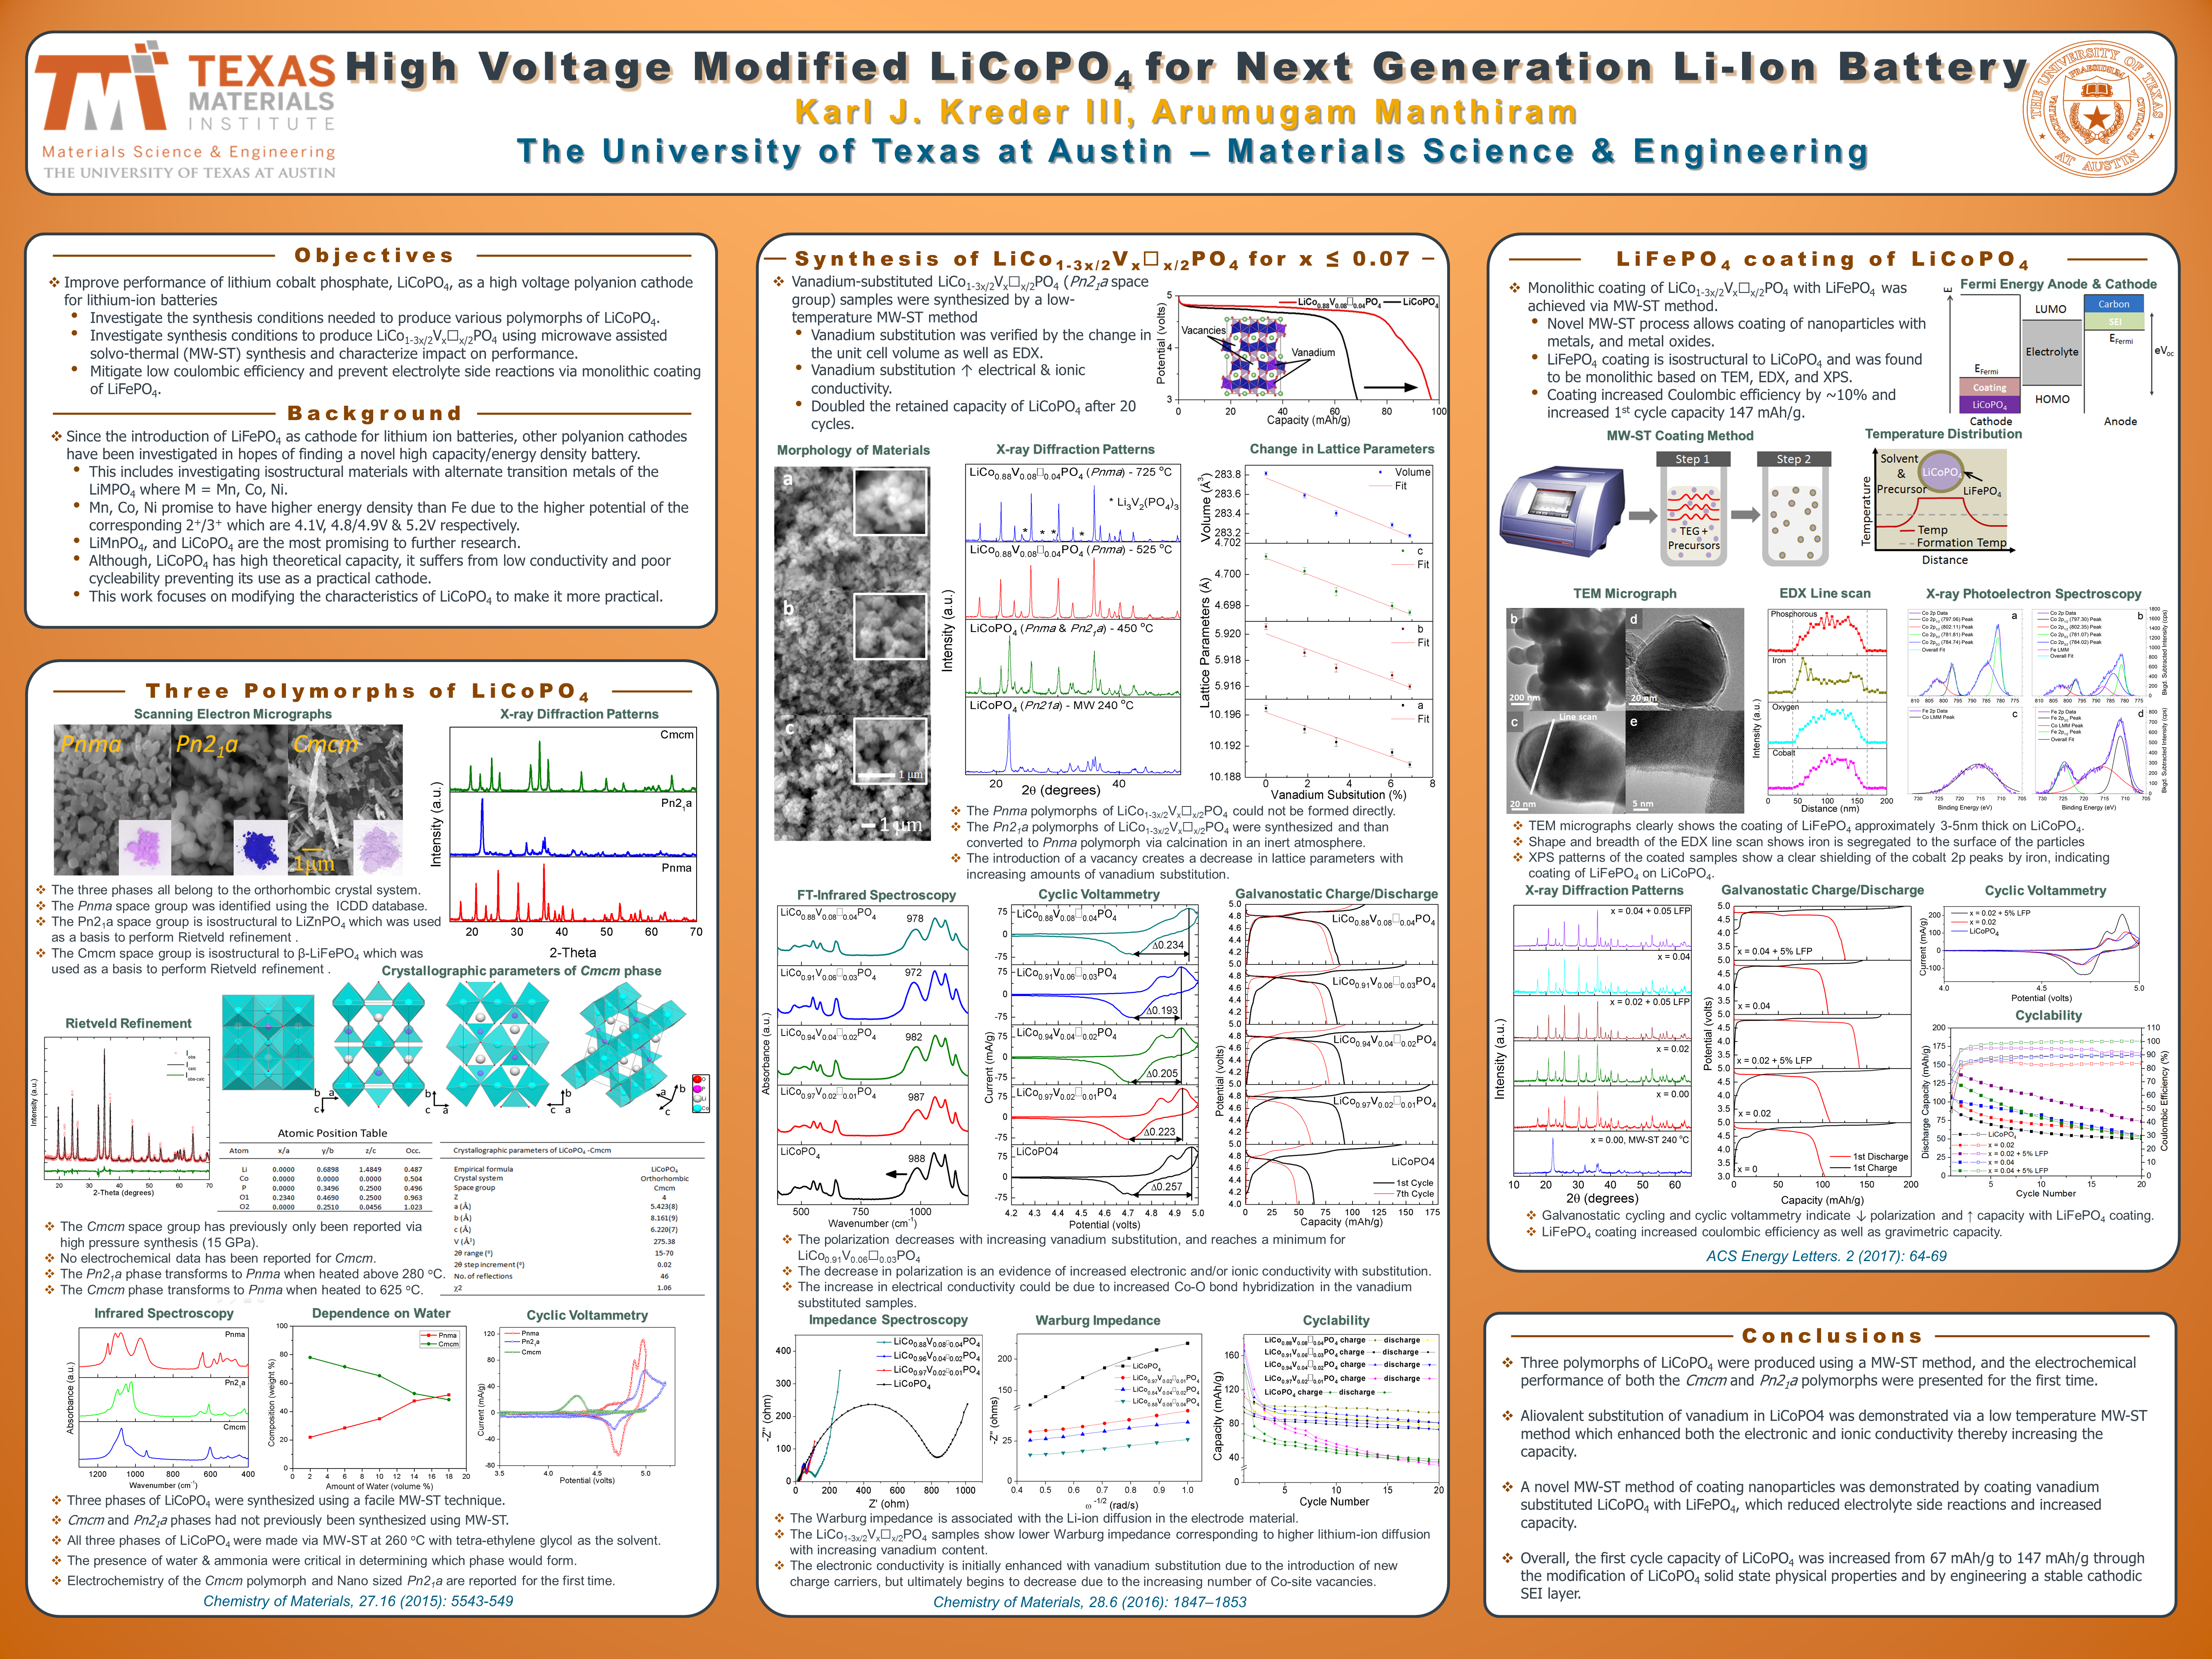 """Karl Kreder's poster titled """"Renewable Energy and Energy Storage"""""""